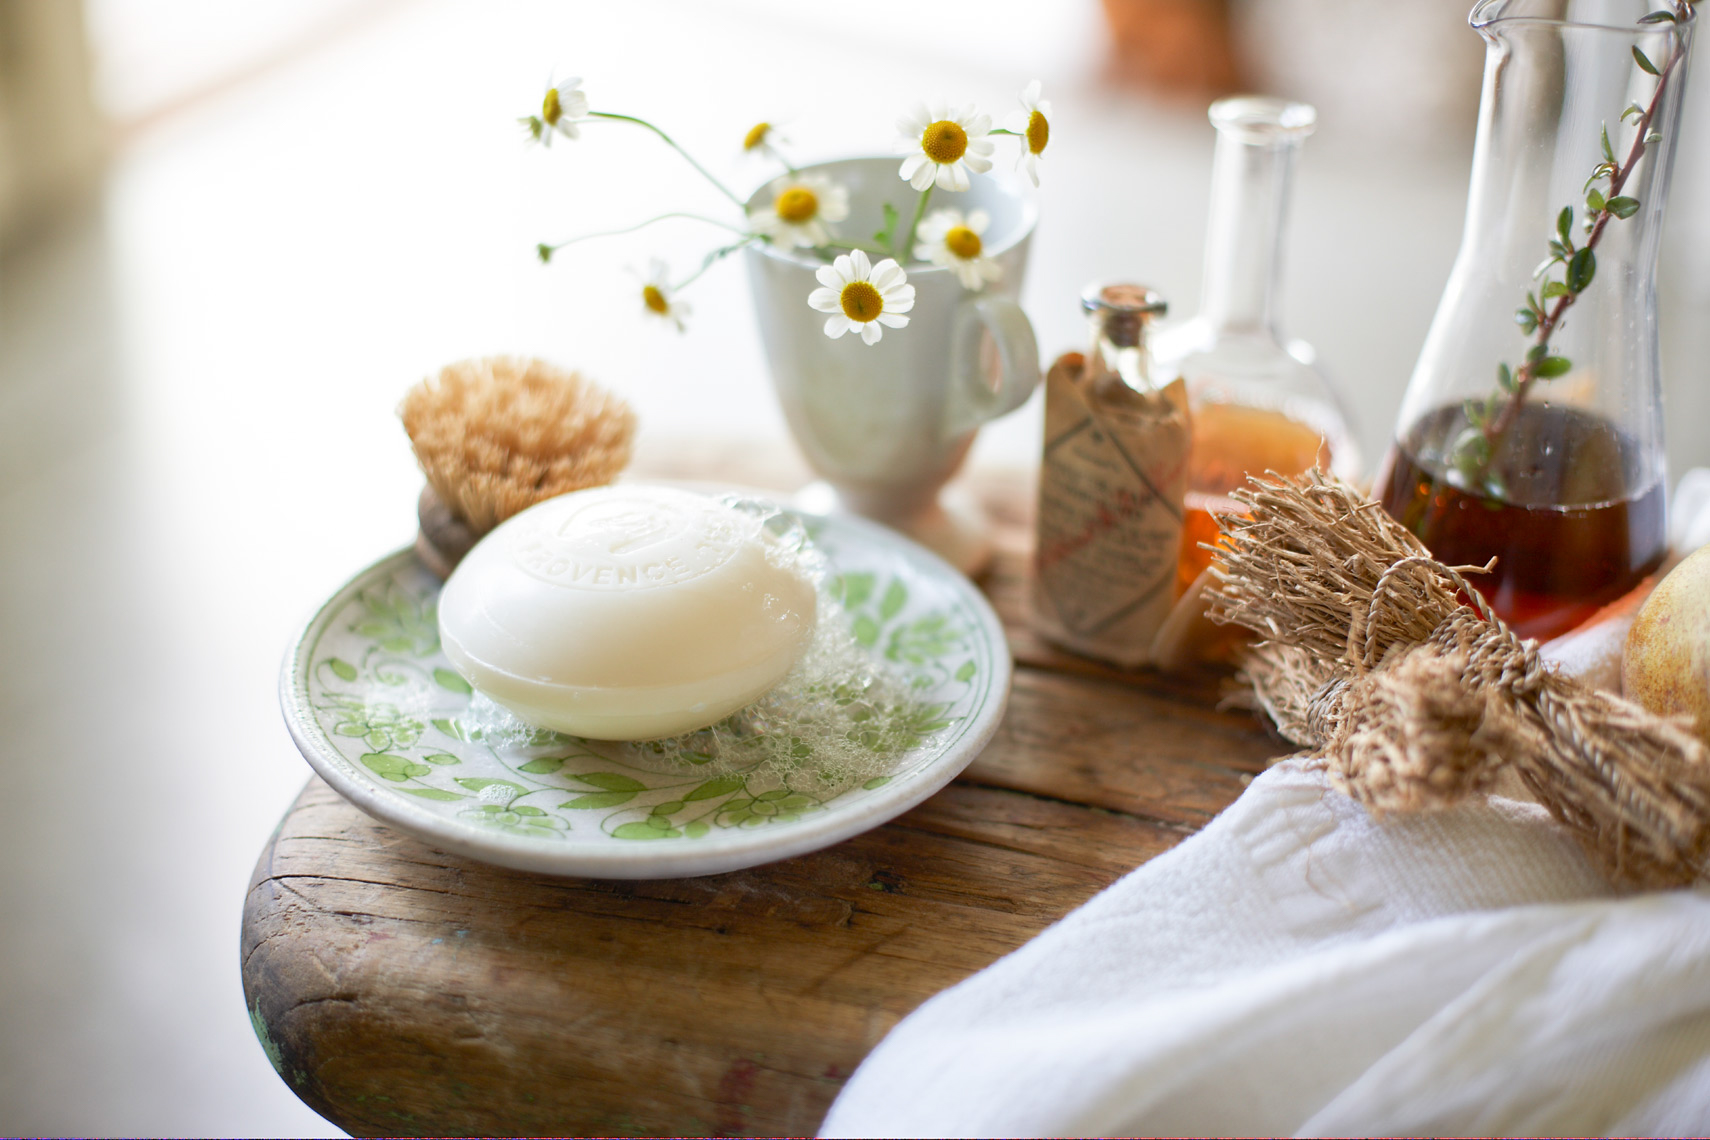 white bar of soap on green floral dish with daisies in white mug on wooden surface San Francisco product photographer